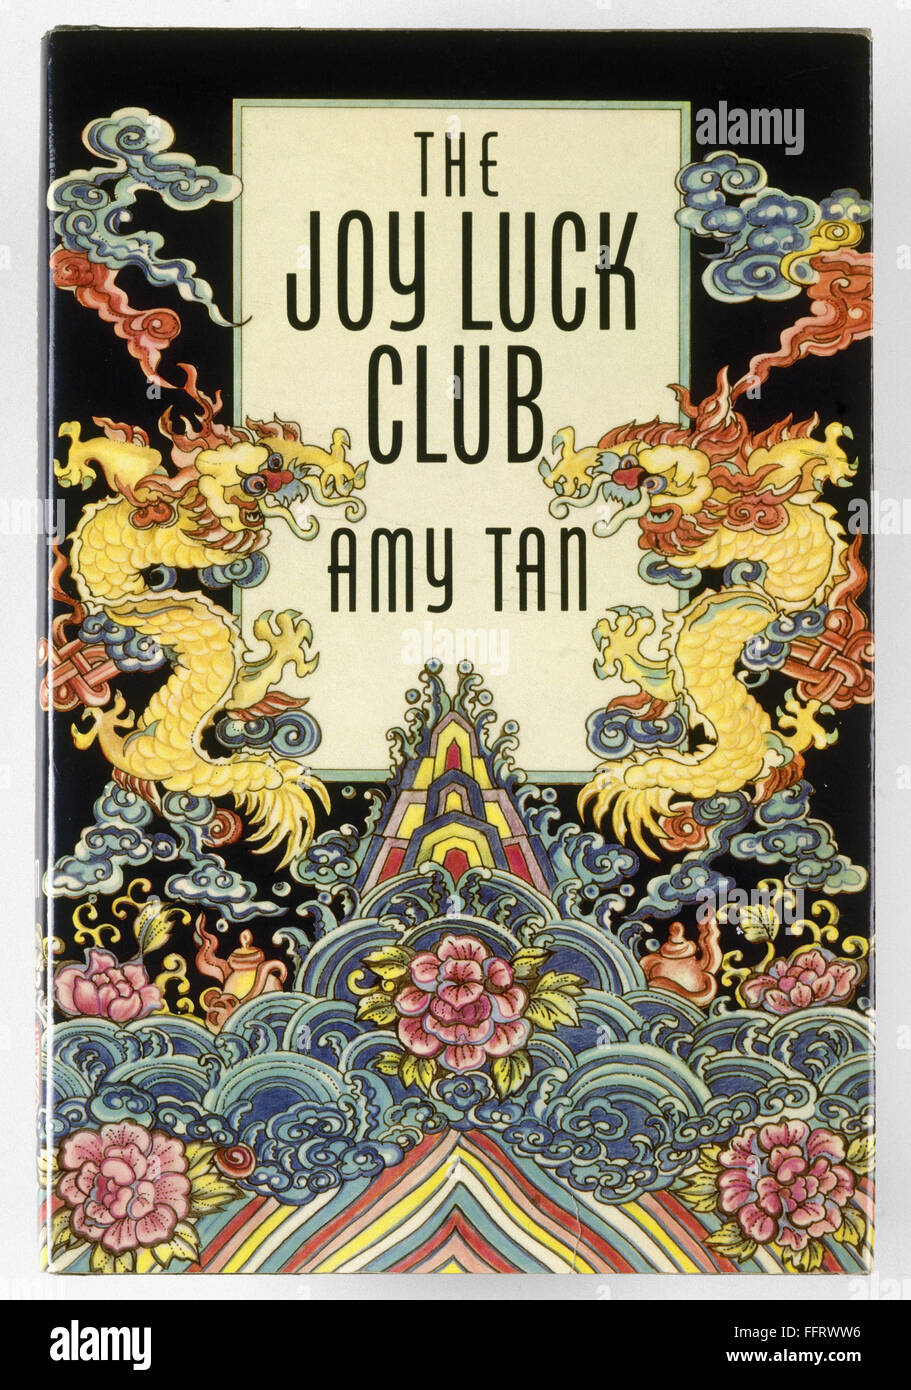 the inseparable relationship of a mother and a daughter in amy tans novel the joy luck club Amy tan, bestselling author of the joy luck club, talks to lisa allardice about luck, the perils of life as a 'writer of colour' - and why her dead mother narrates her latest novel.